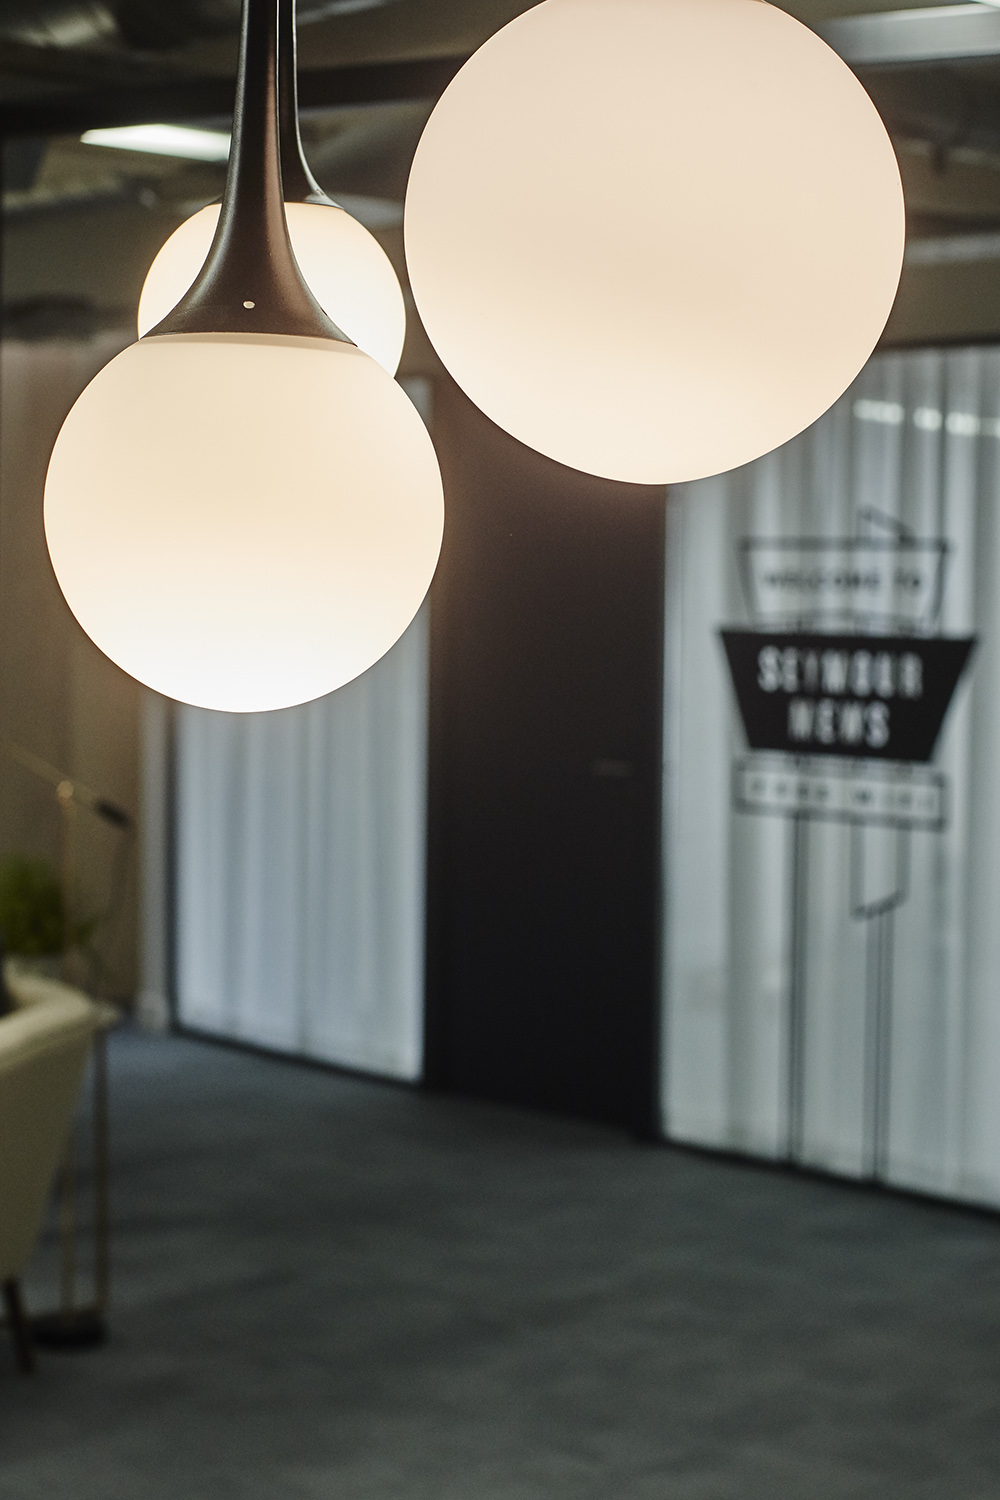 Good_Stuff_851_cool_workspace_office_design_interiors_graphic_london_lighting